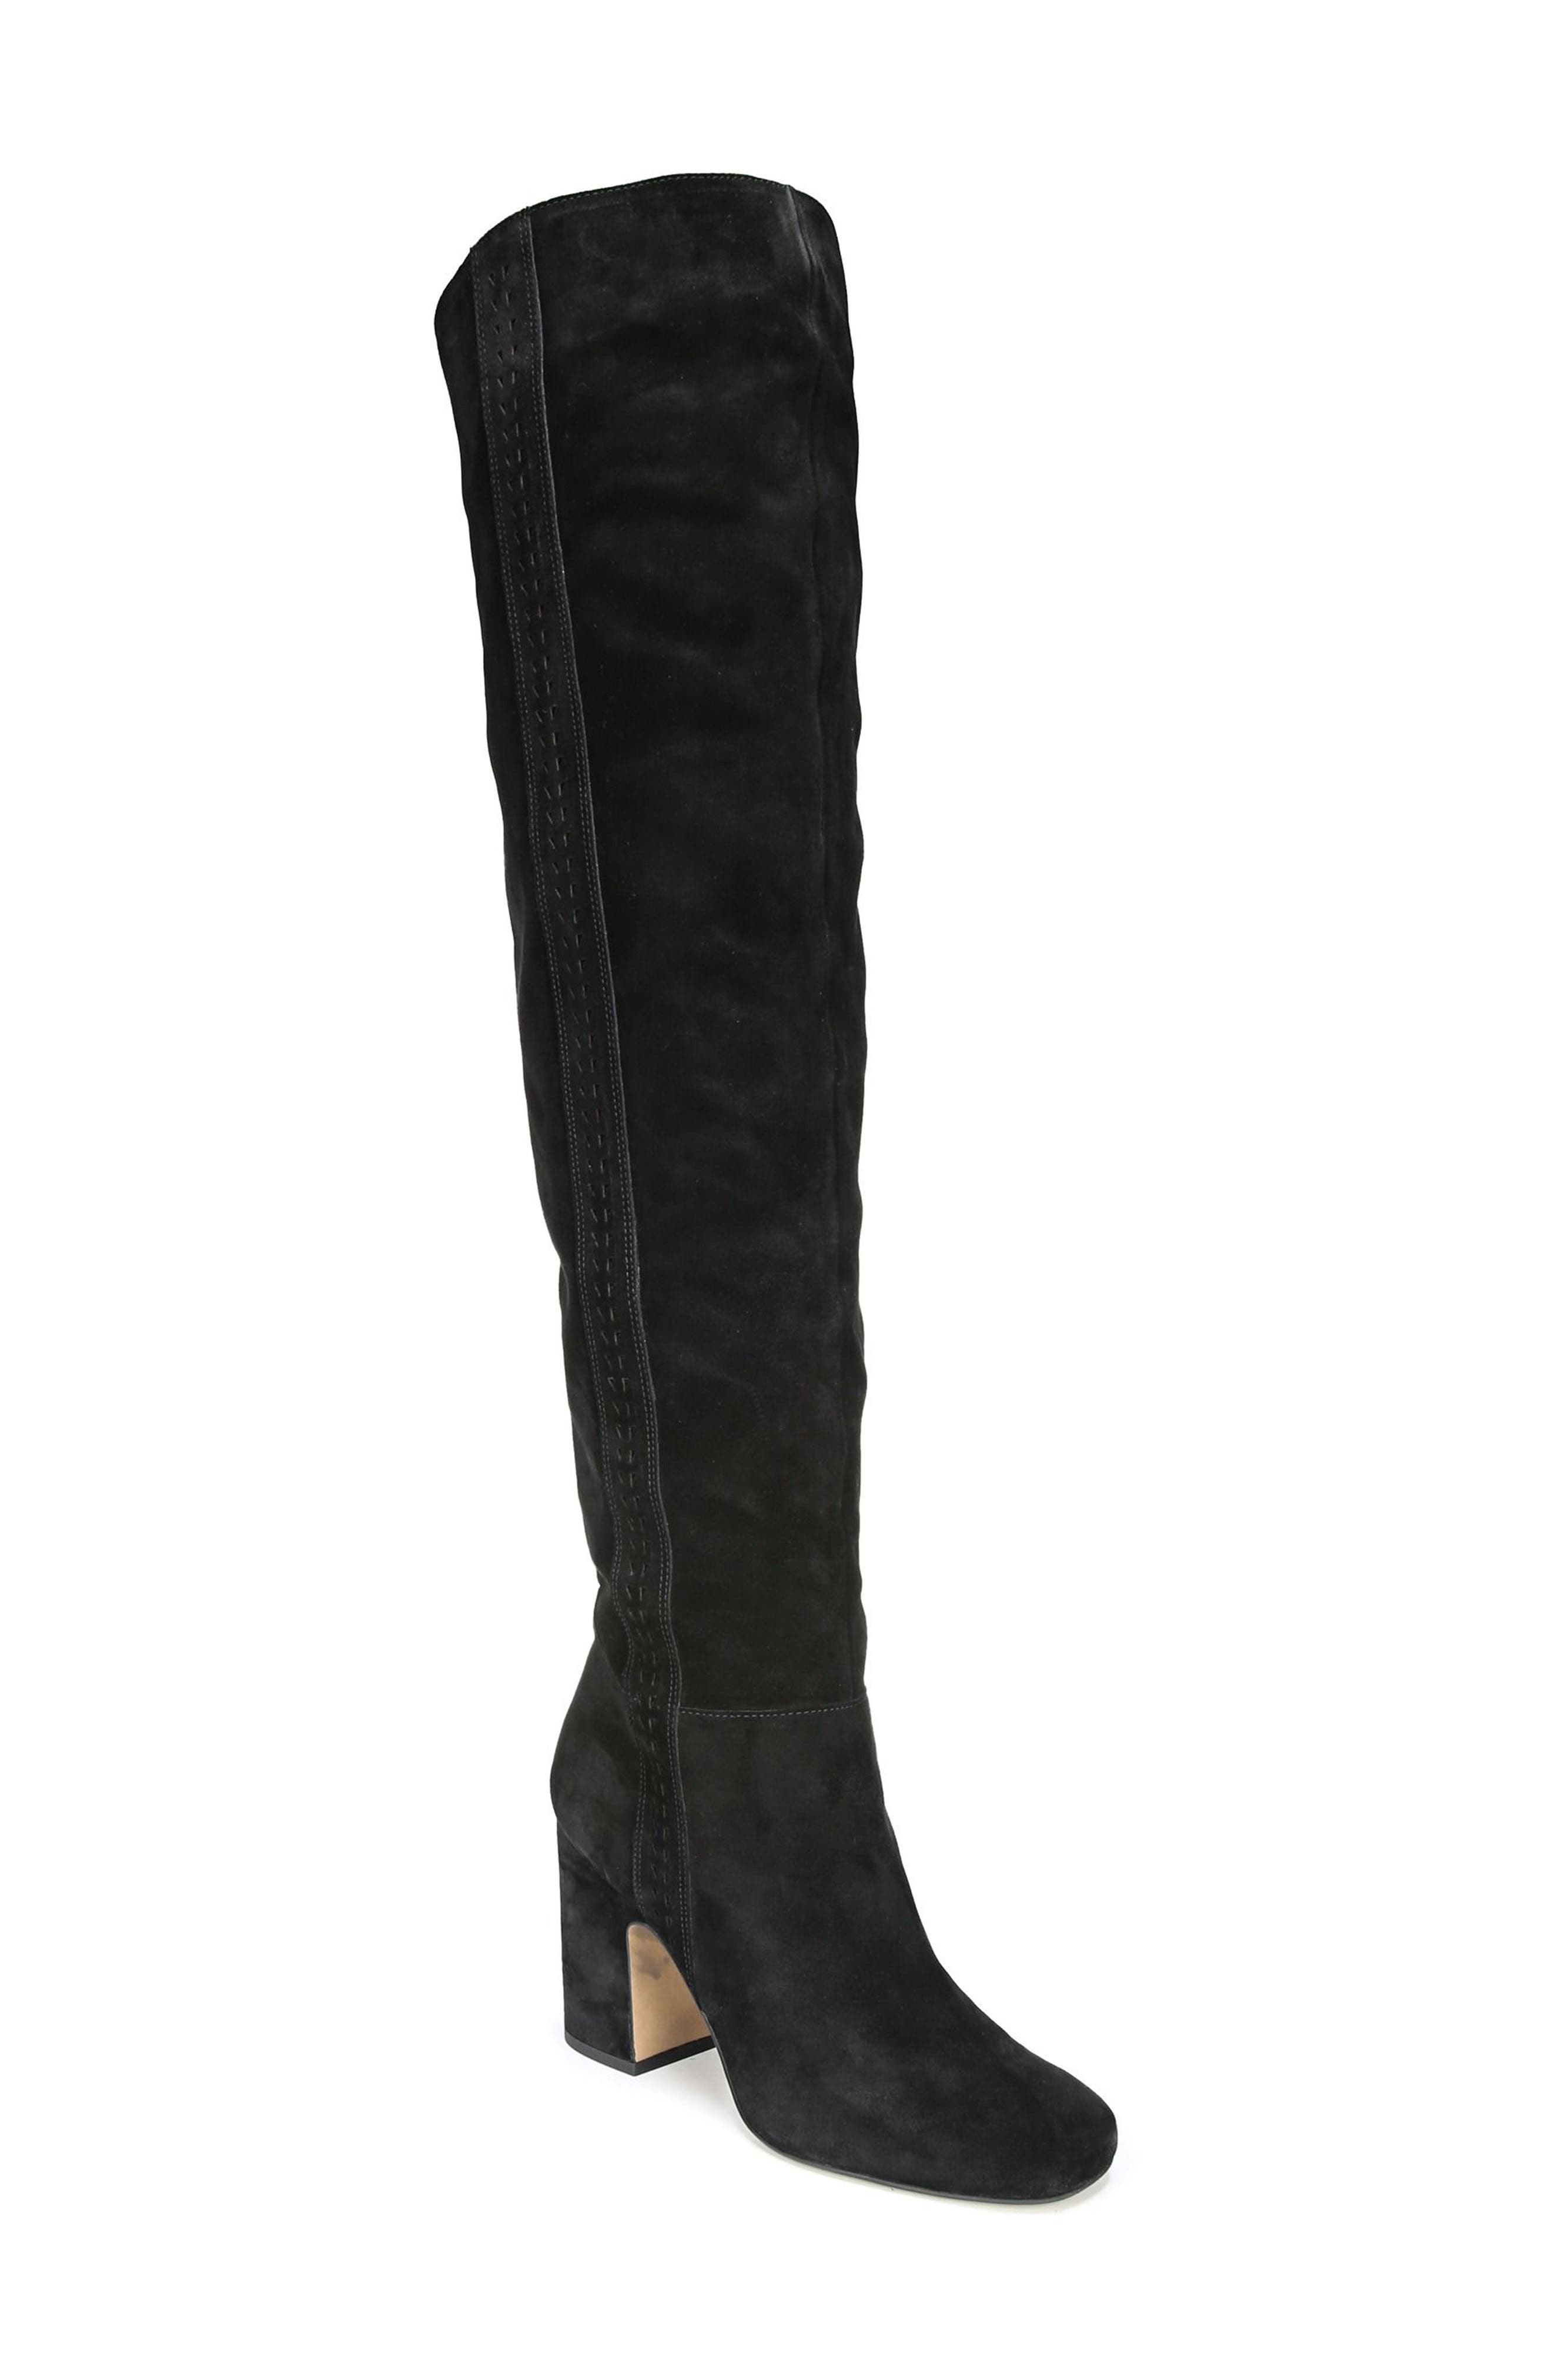 Laurel Over the Knee Boot,                         Main,                         color, 002